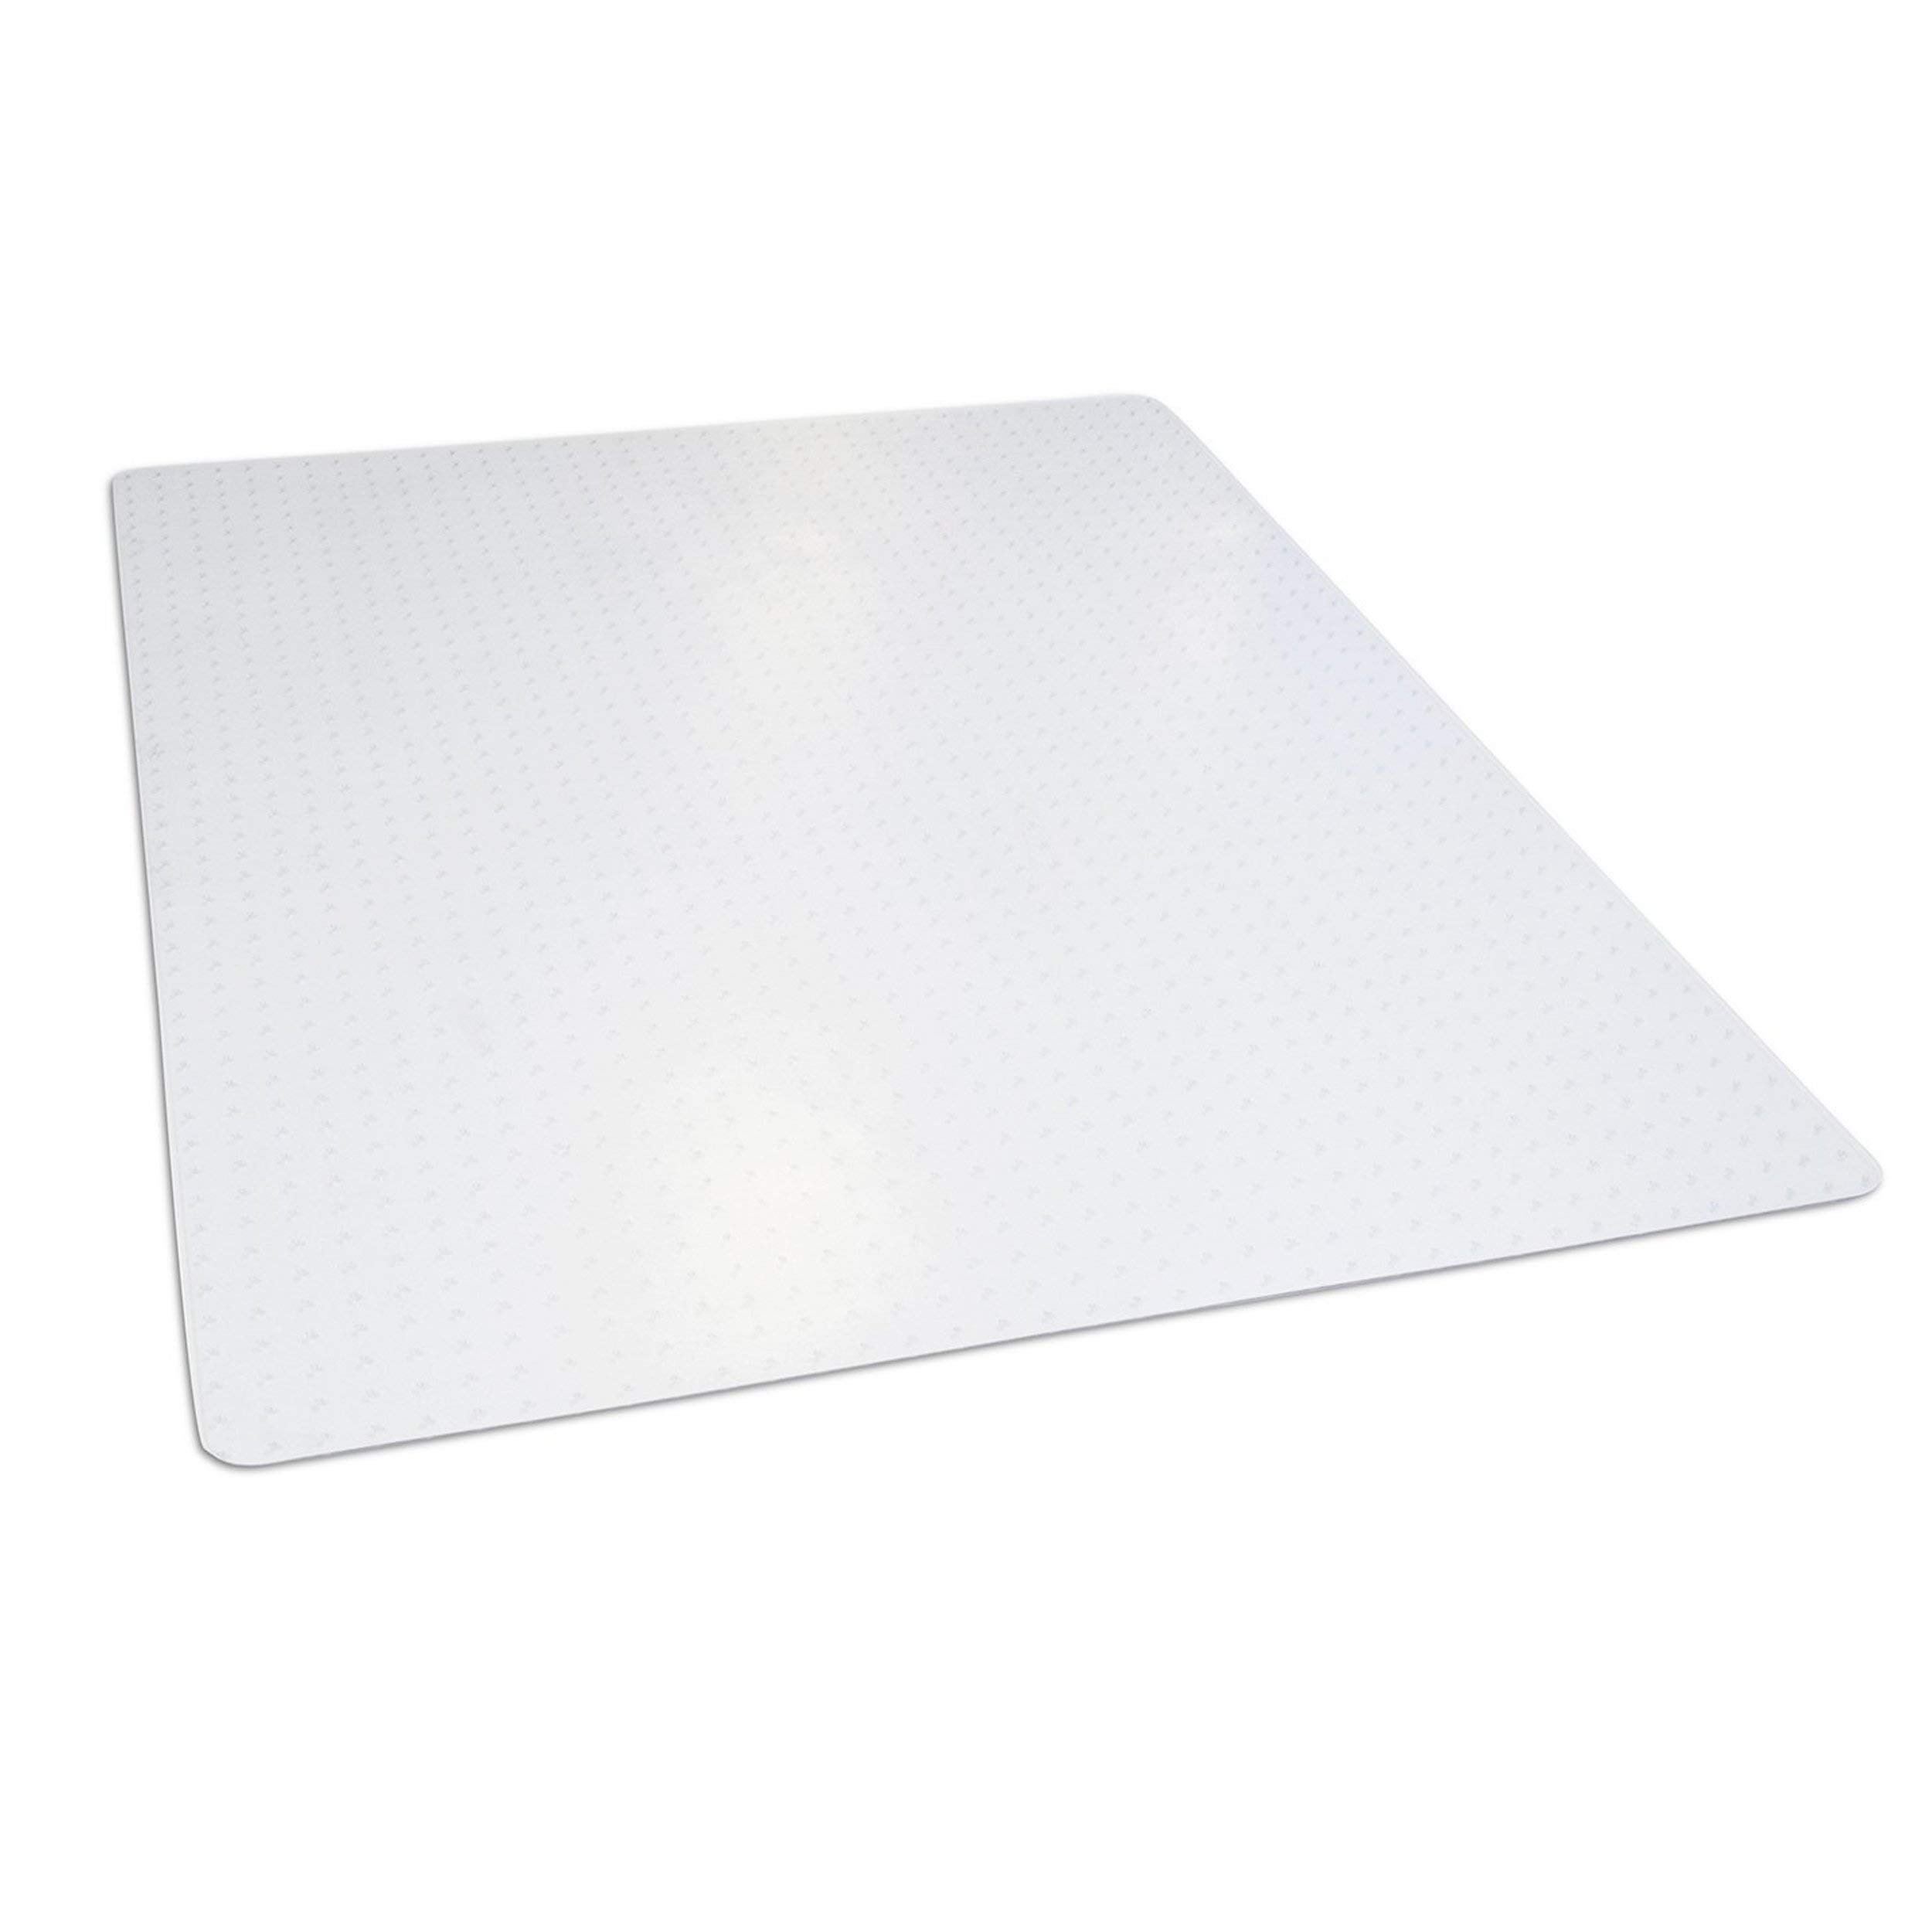 Dimex 46inx 60in Clear Rectangle Office Chair Mat For Low Pile Carpet, Made In The USA, BPA And Phthalate Free, C532001G (Renewed) by Dimex